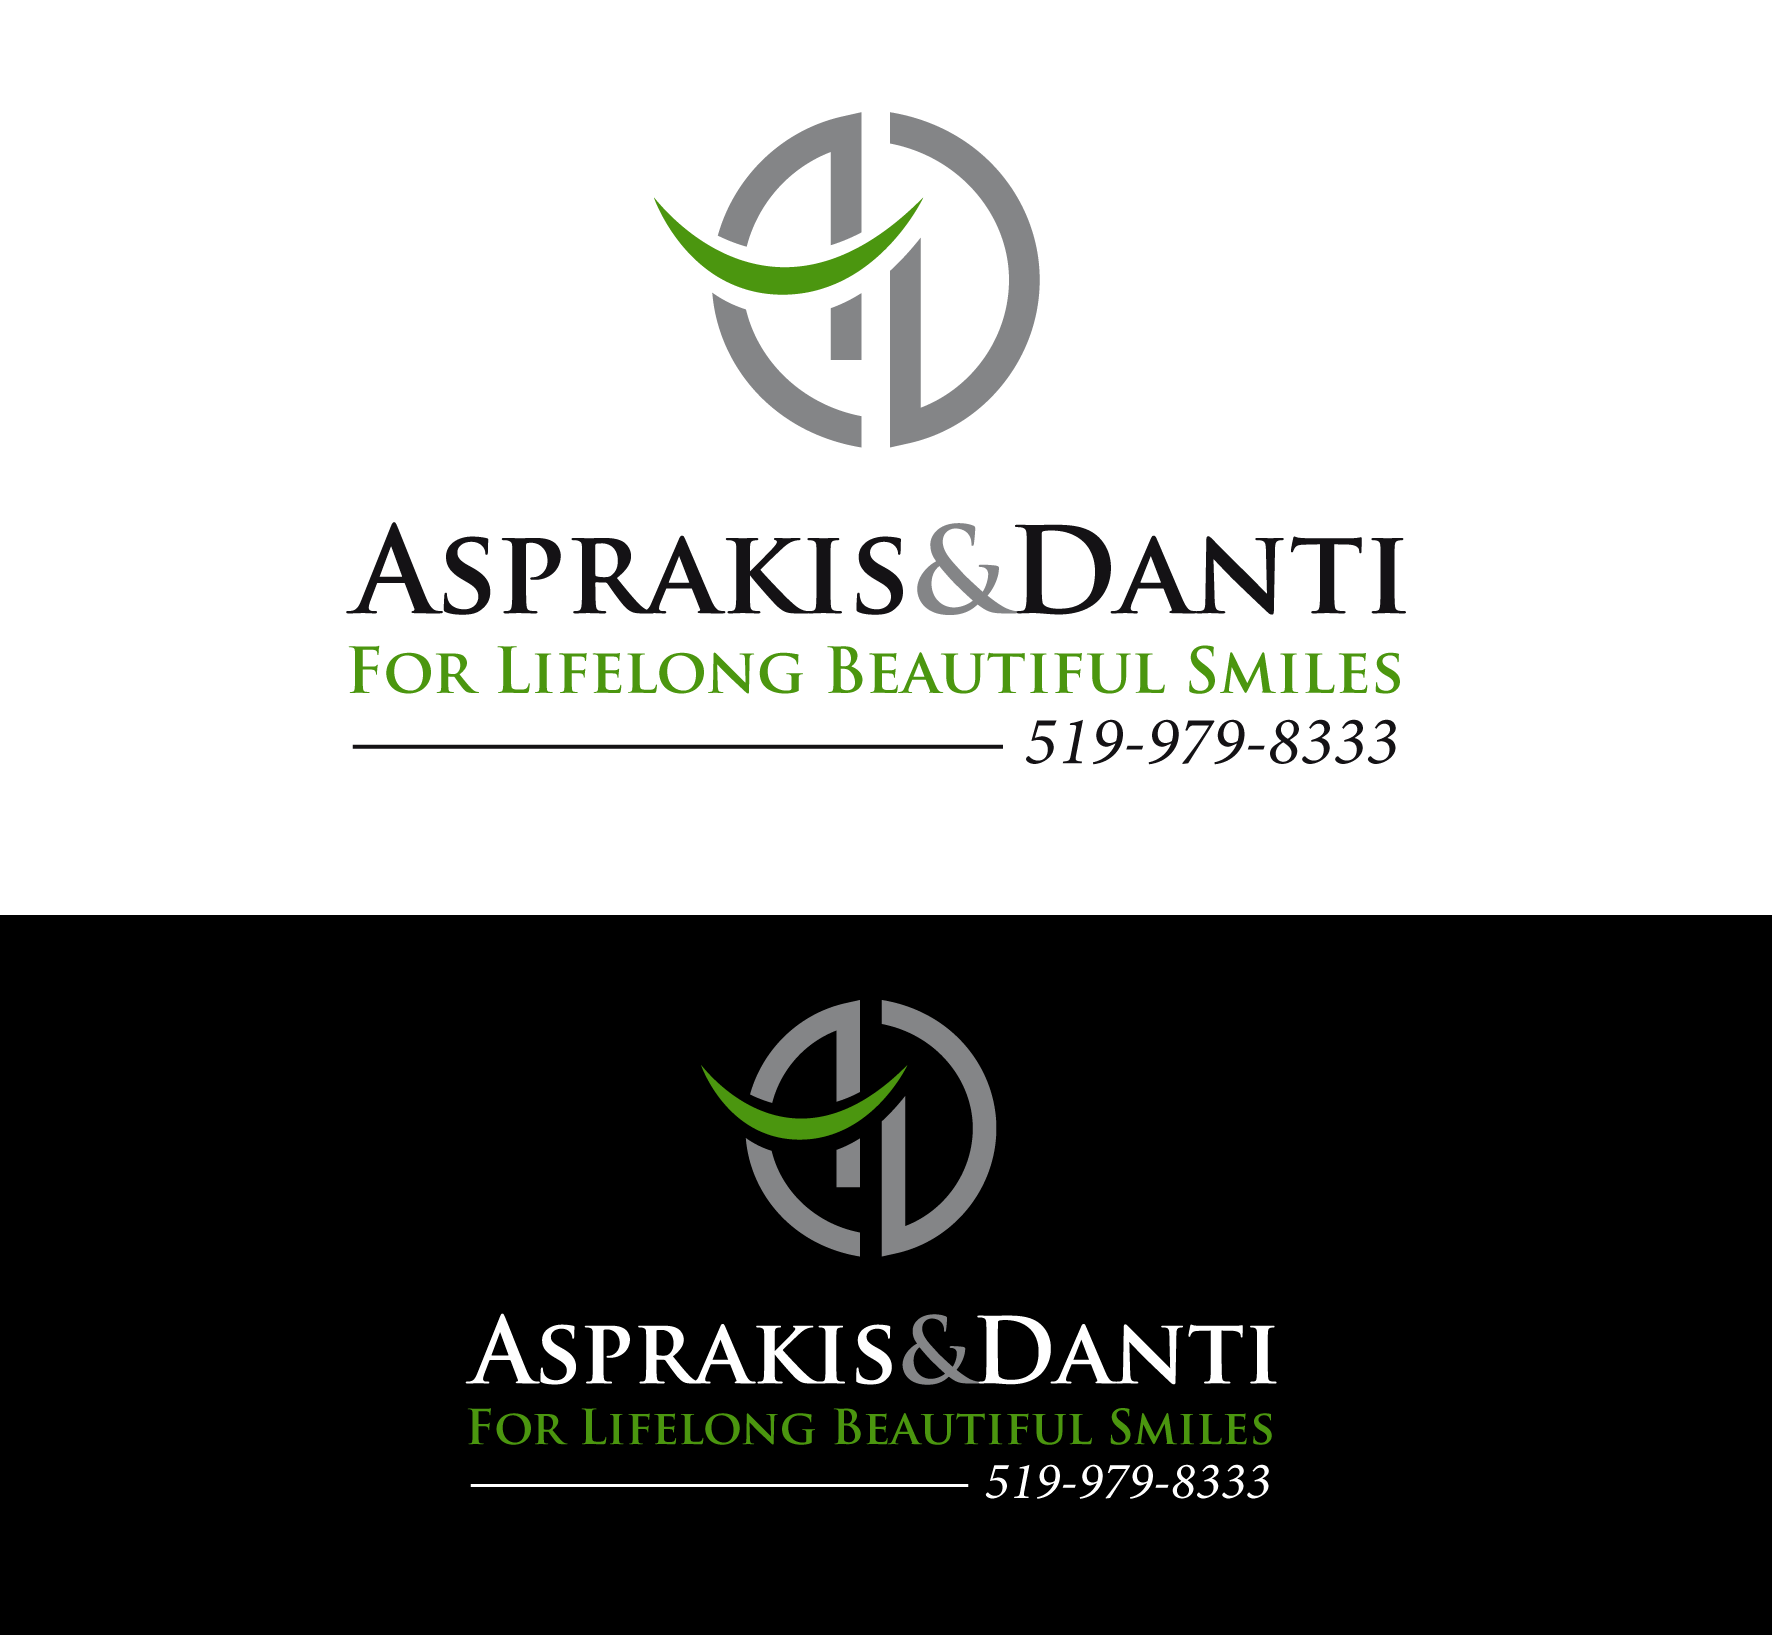 Logo Design by luna - Entry No. 88 in the Logo Design Contest Unique Logo Design Wanted for Asprakis and Danti.